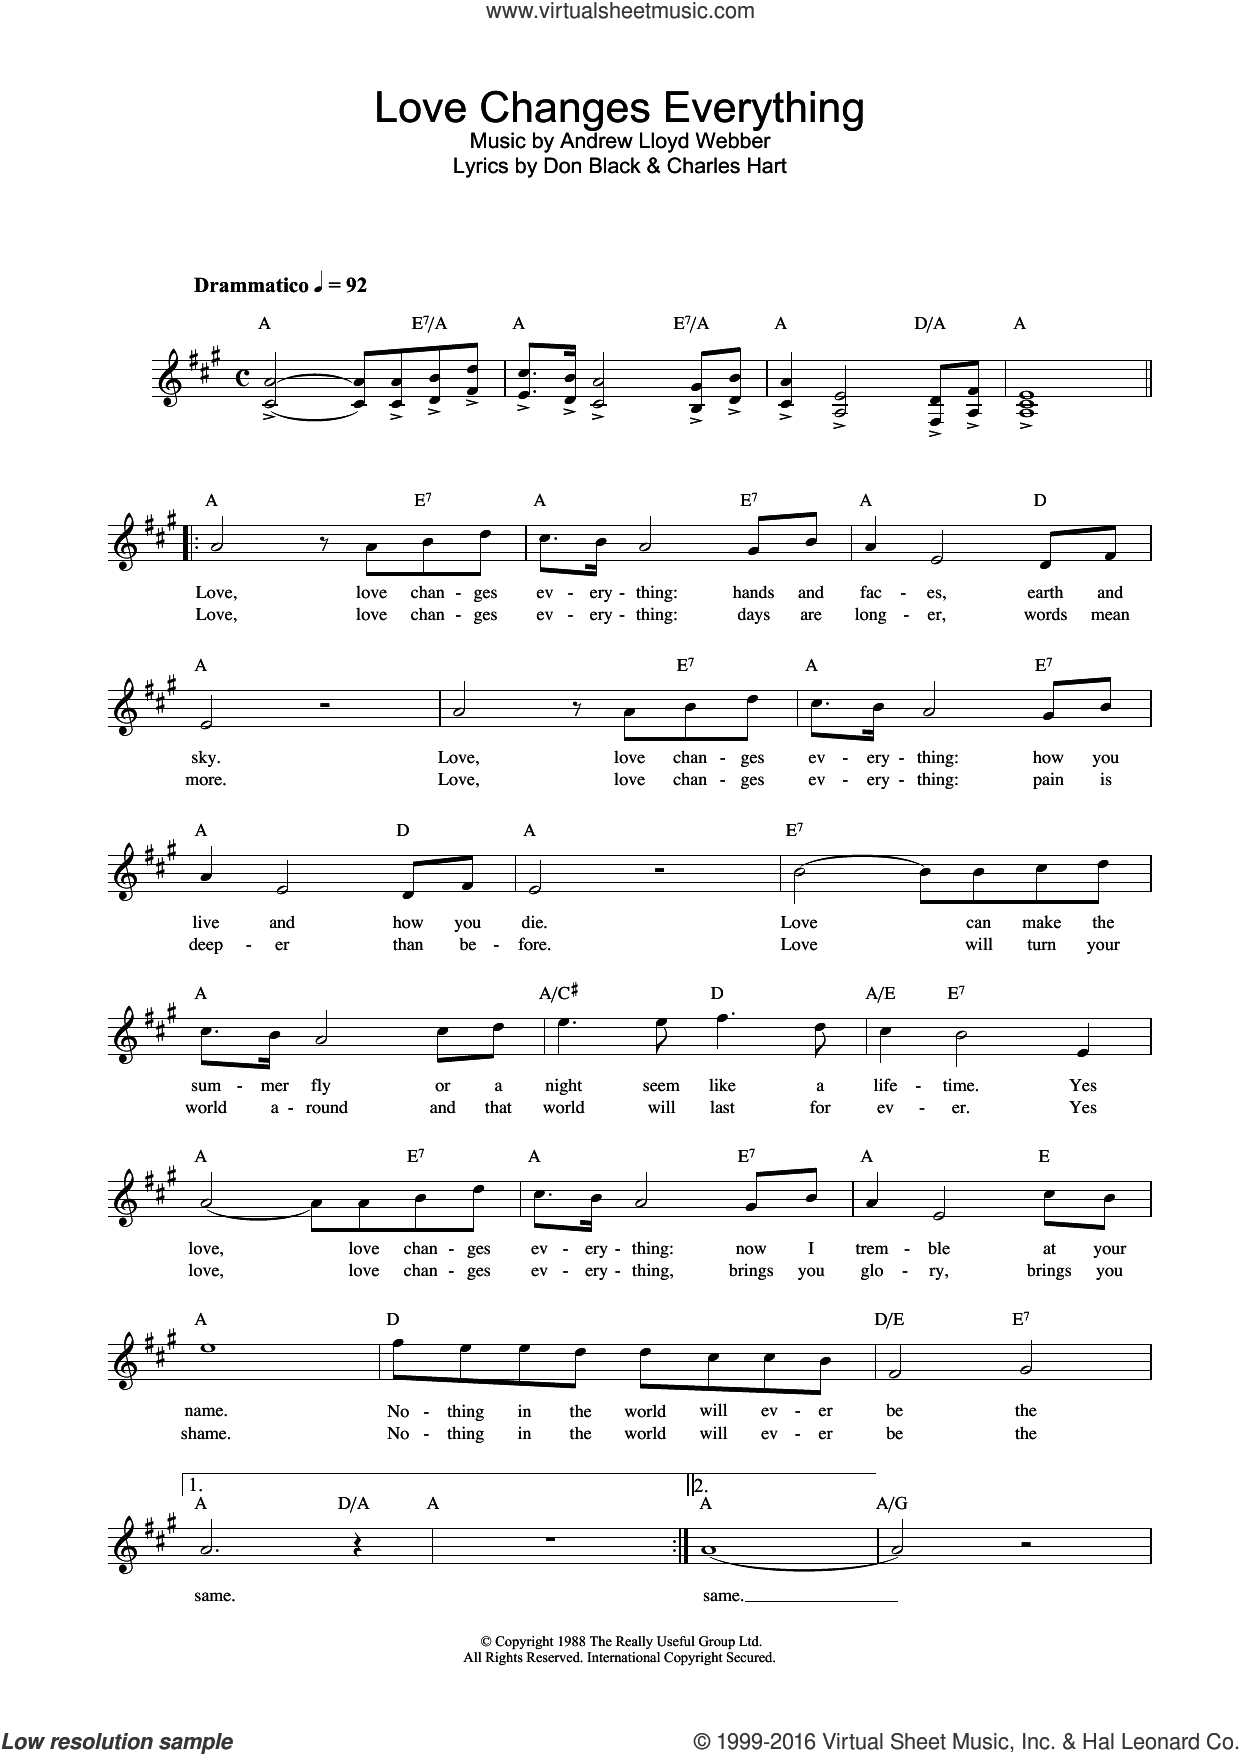 Love Changes Everything (from Aspects Of Love) sheet music for voice and other instruments (fake book) by Don Black, Michael Ball, Andrew Lloyd Webber and Charles Hart. Score Image Preview.